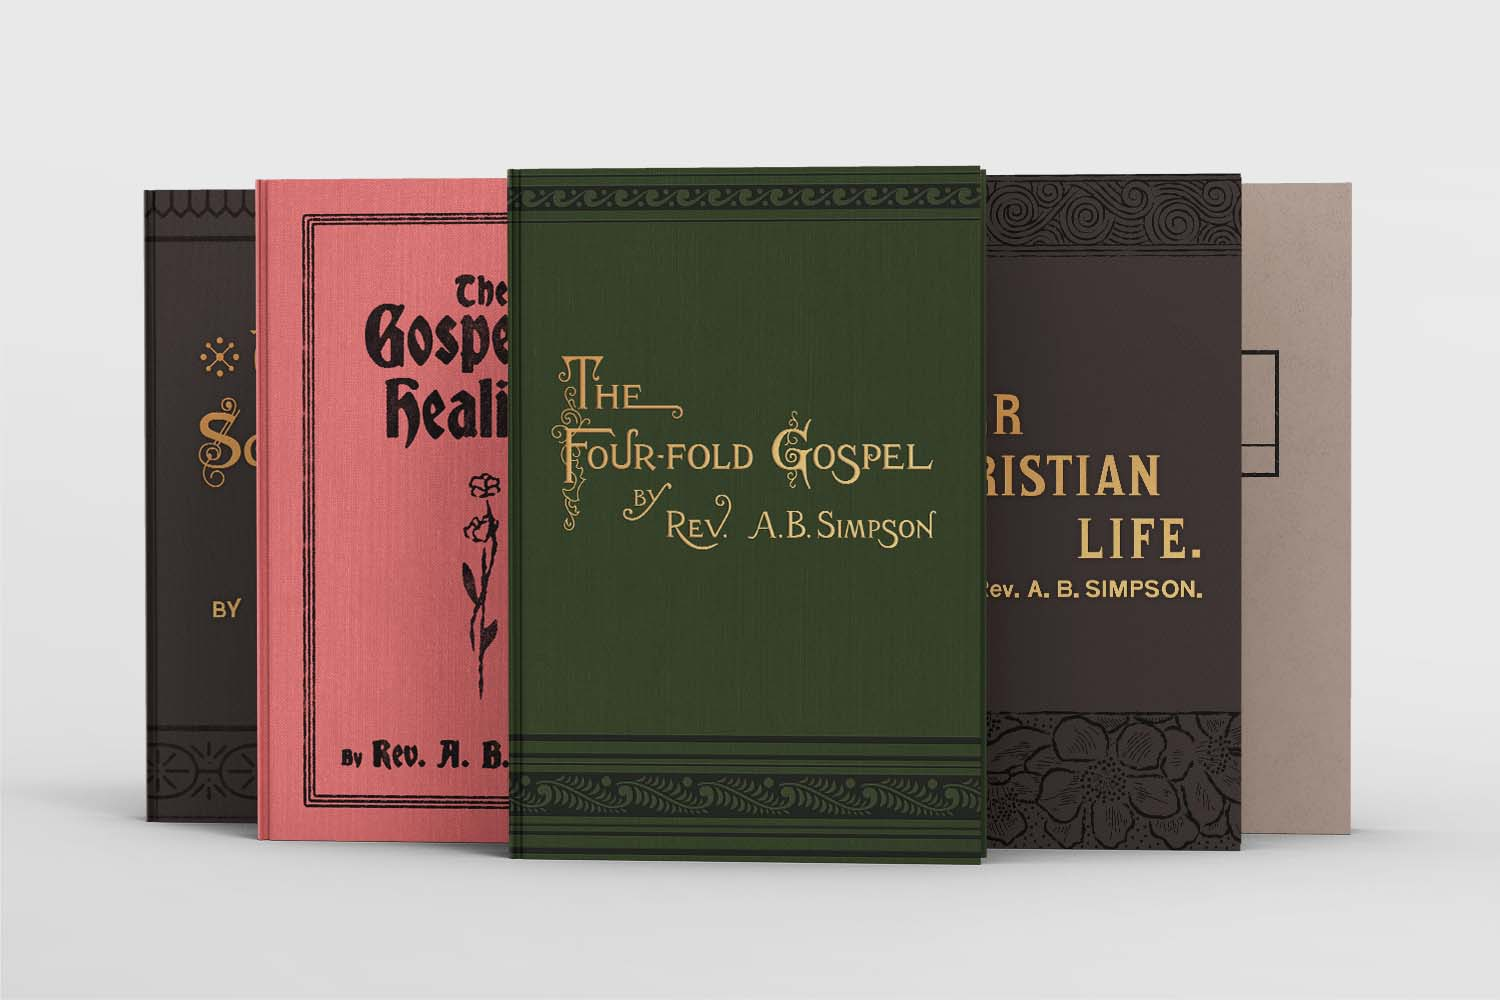 Mockup of A.B. Simpson Books. Five book titles showing: Fourfold Gospel, The Gospel of Healing, A Larger Christian Life, Service for teh King, and Wolly Sanctified